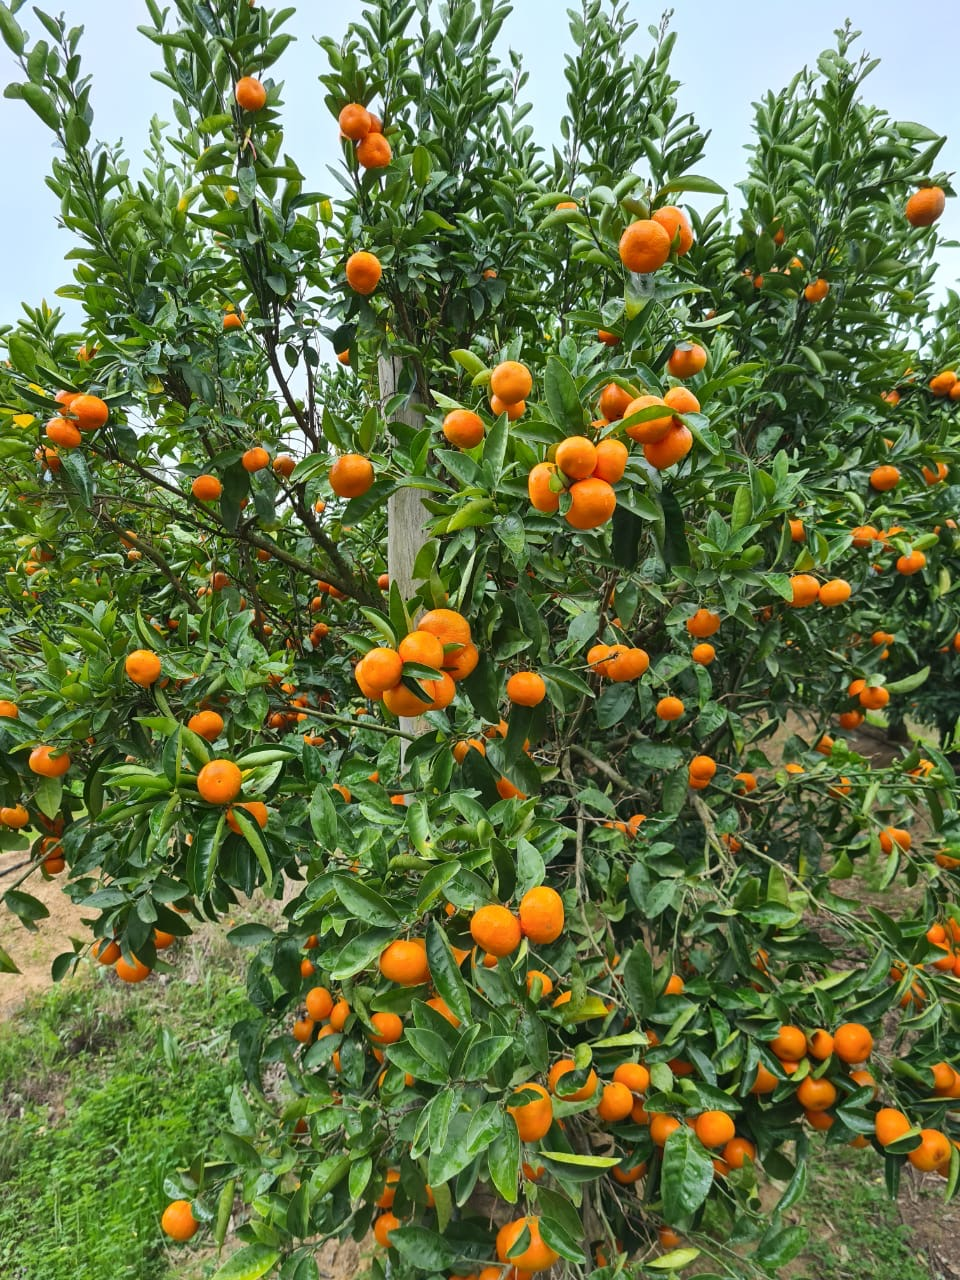 Fresh produce grower Jupiter Group's Moroccan citrus season starts with Clementines